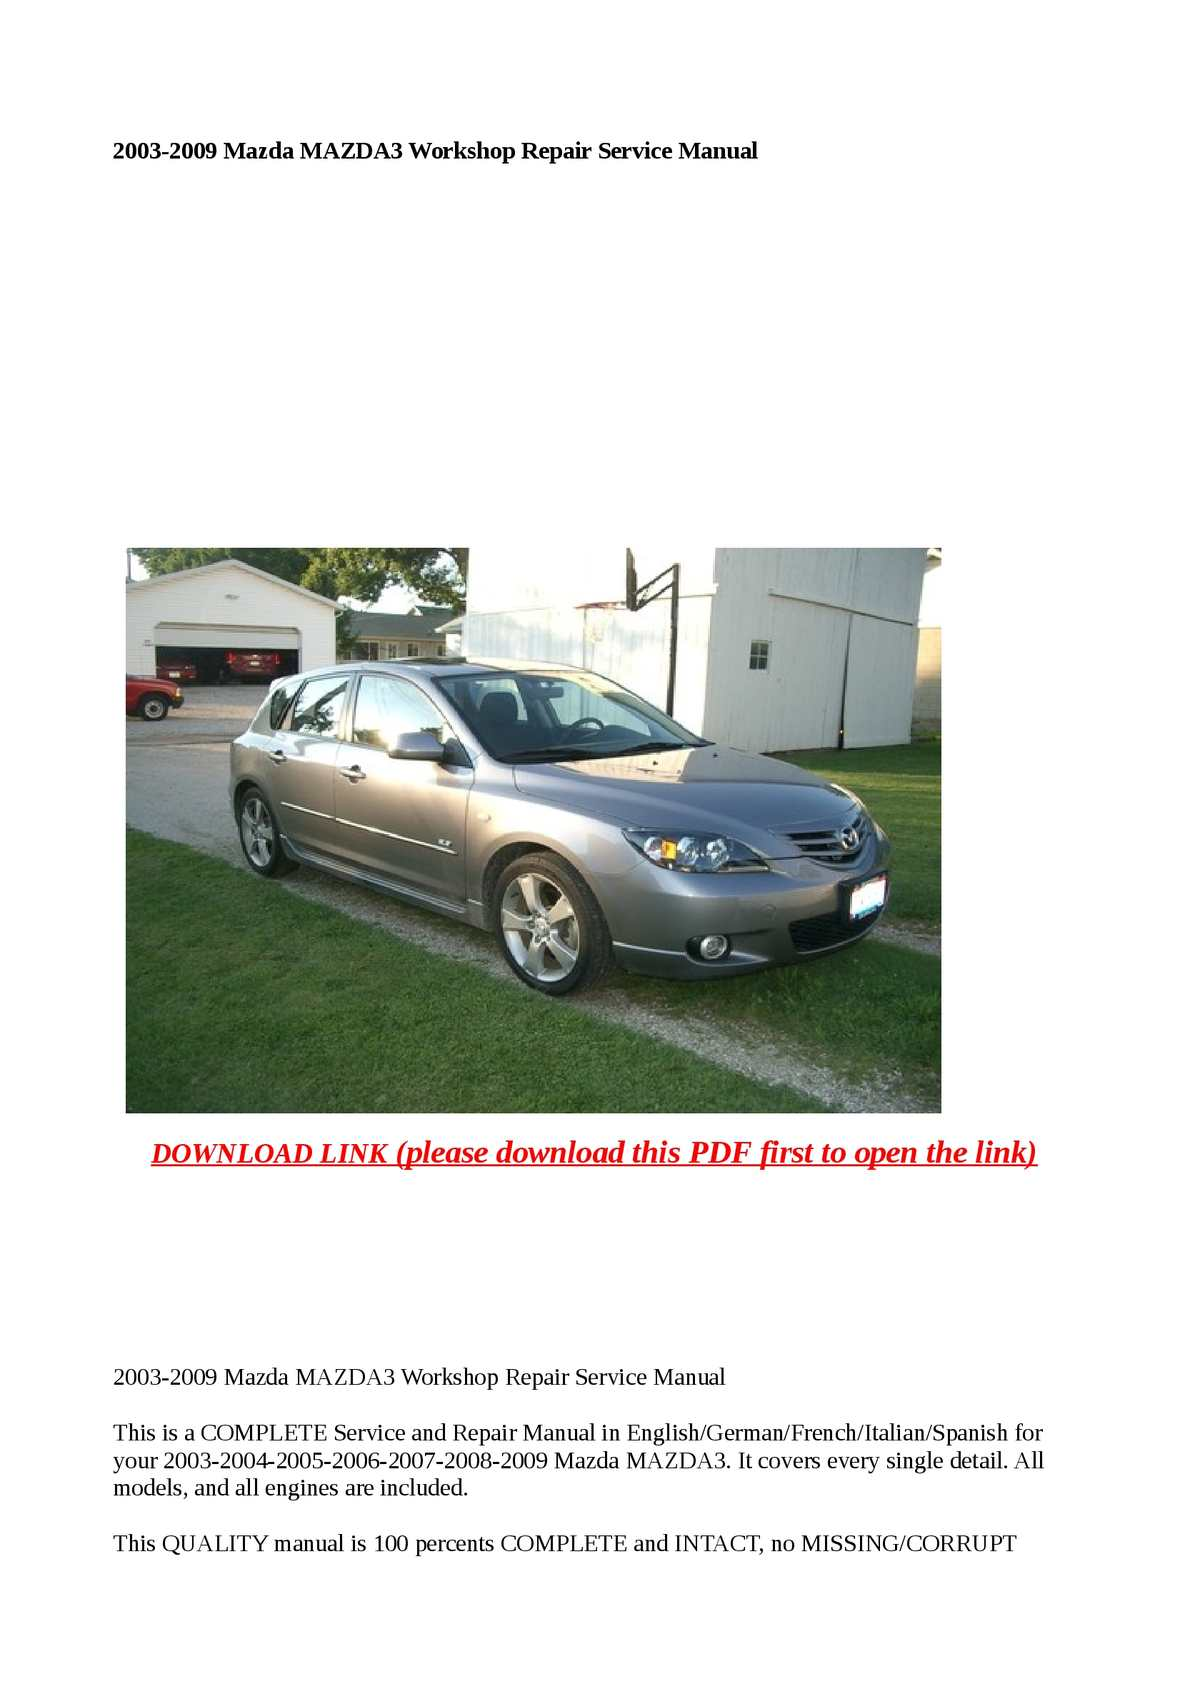 Mazda 3 Service Manual: Engine